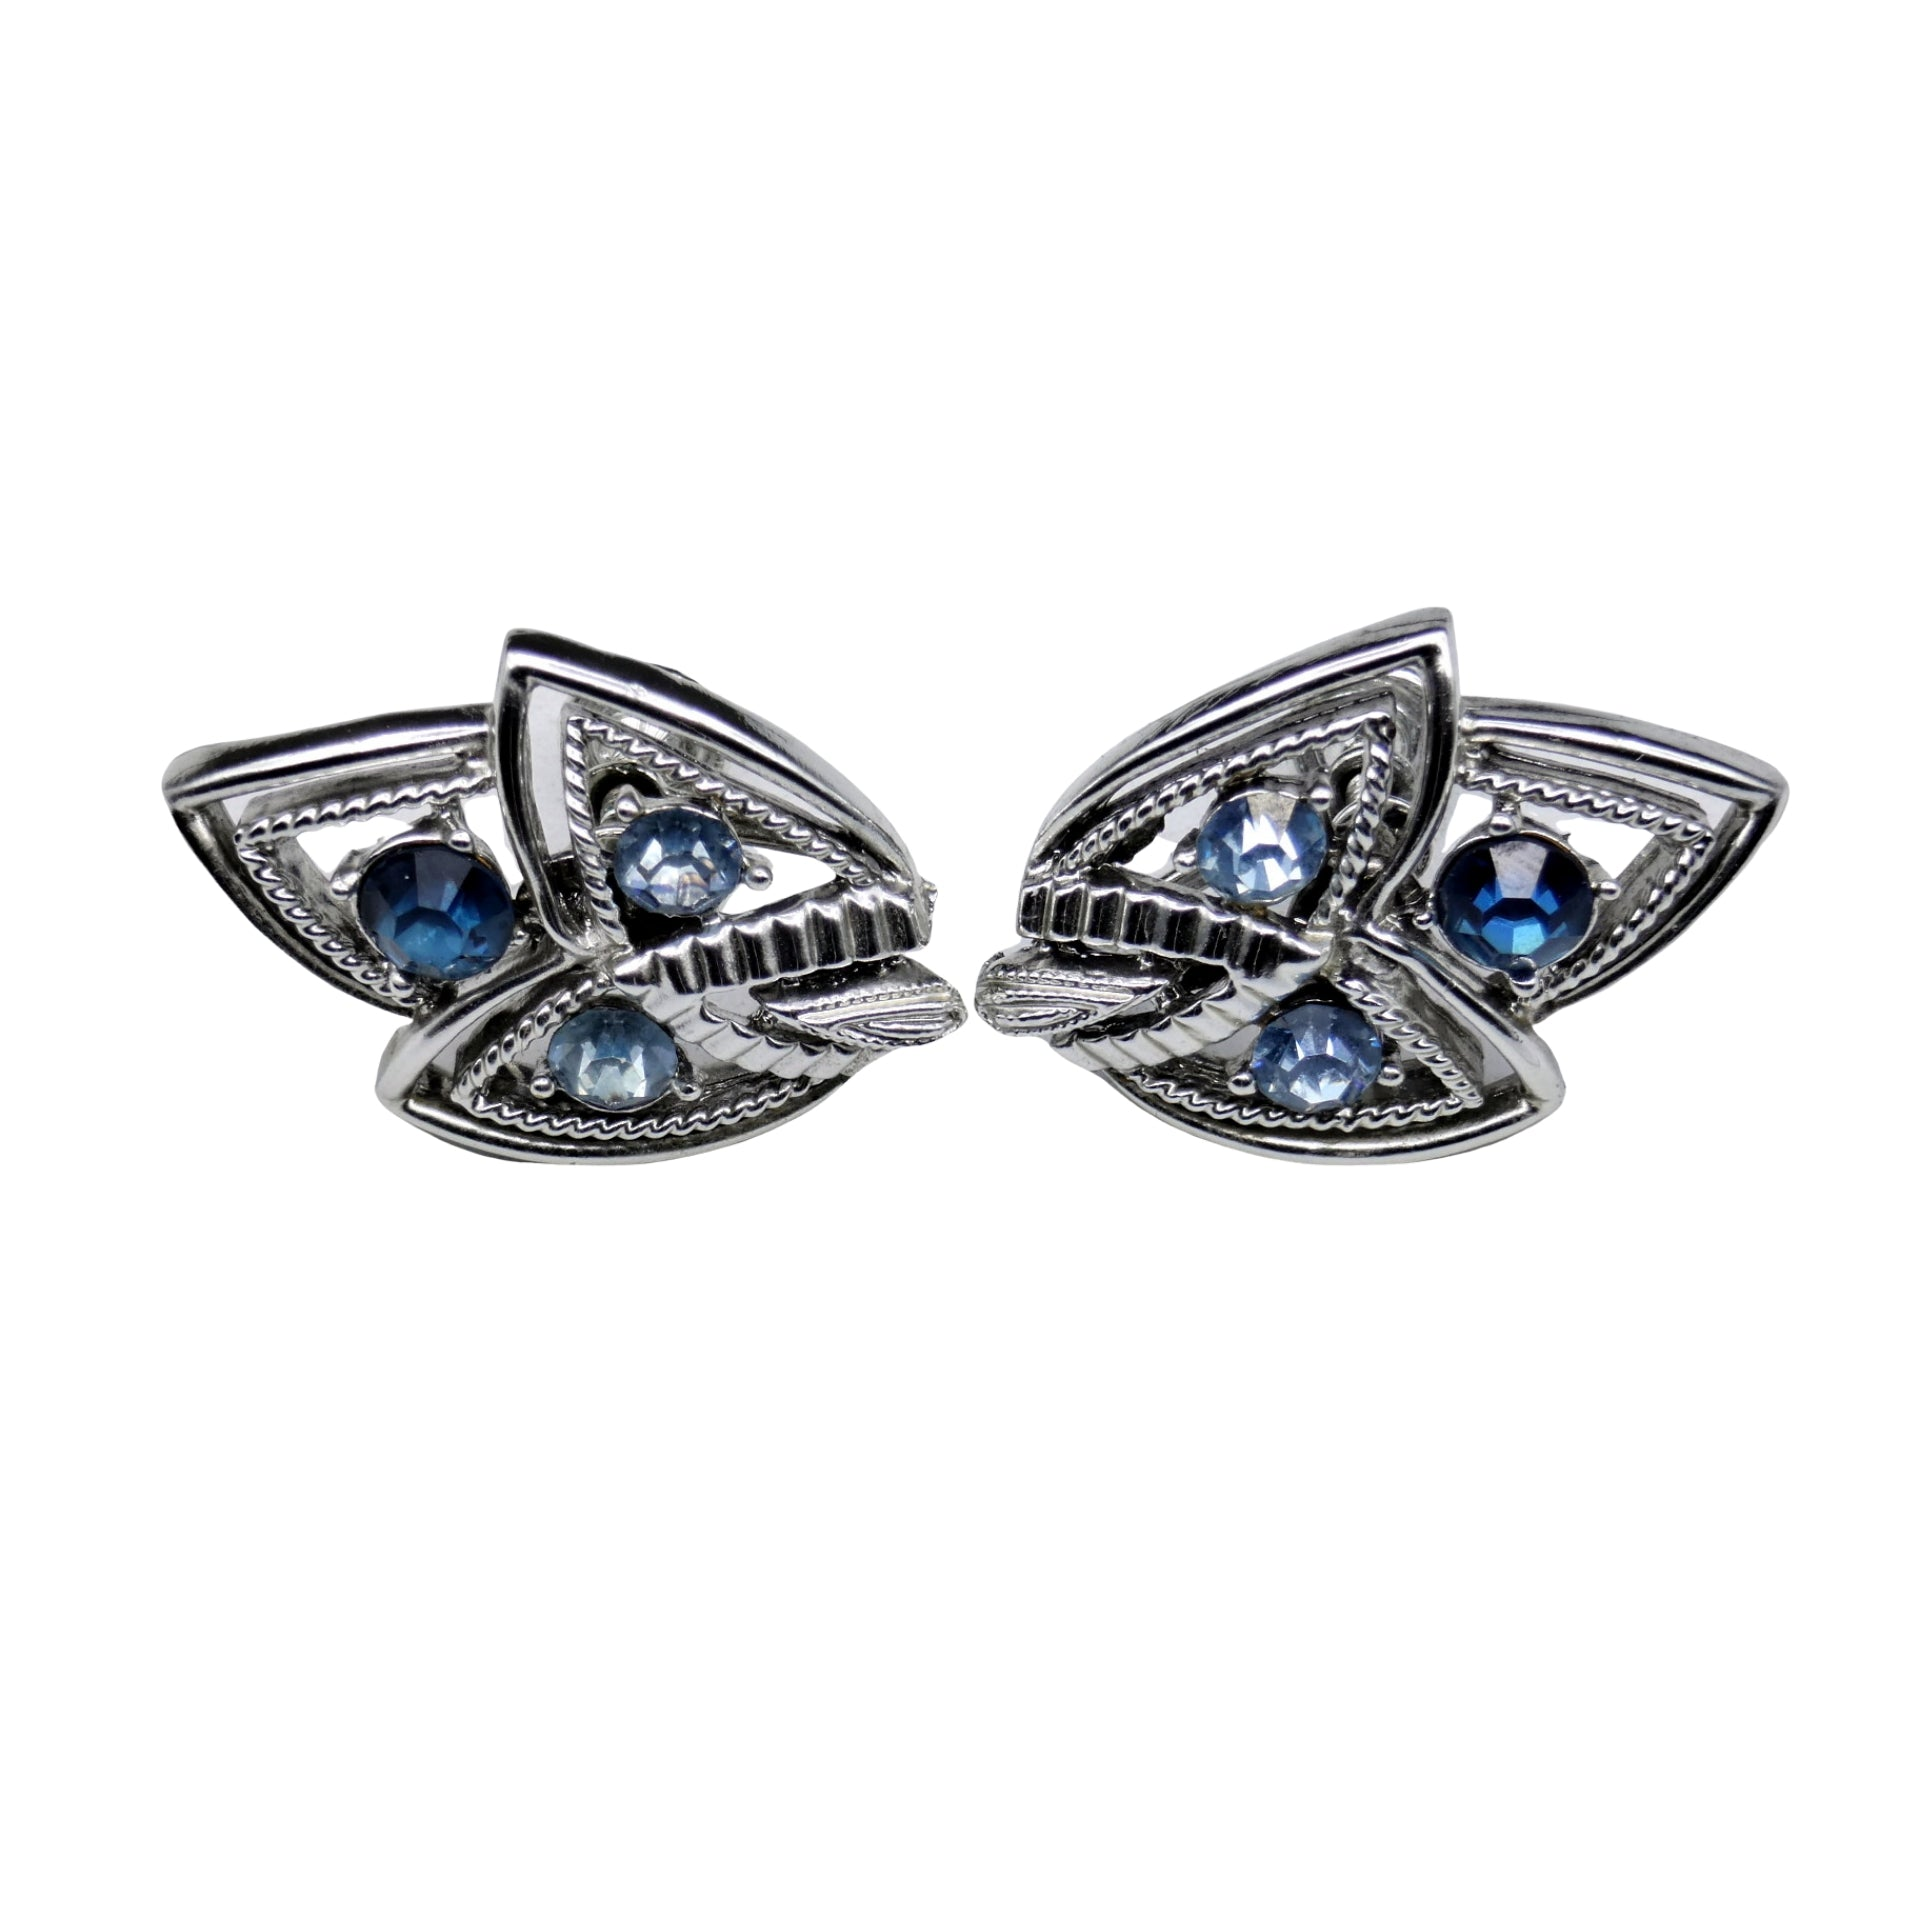 Mid Century Jewelry - Coro Blue Topaz Screw Back Earrings